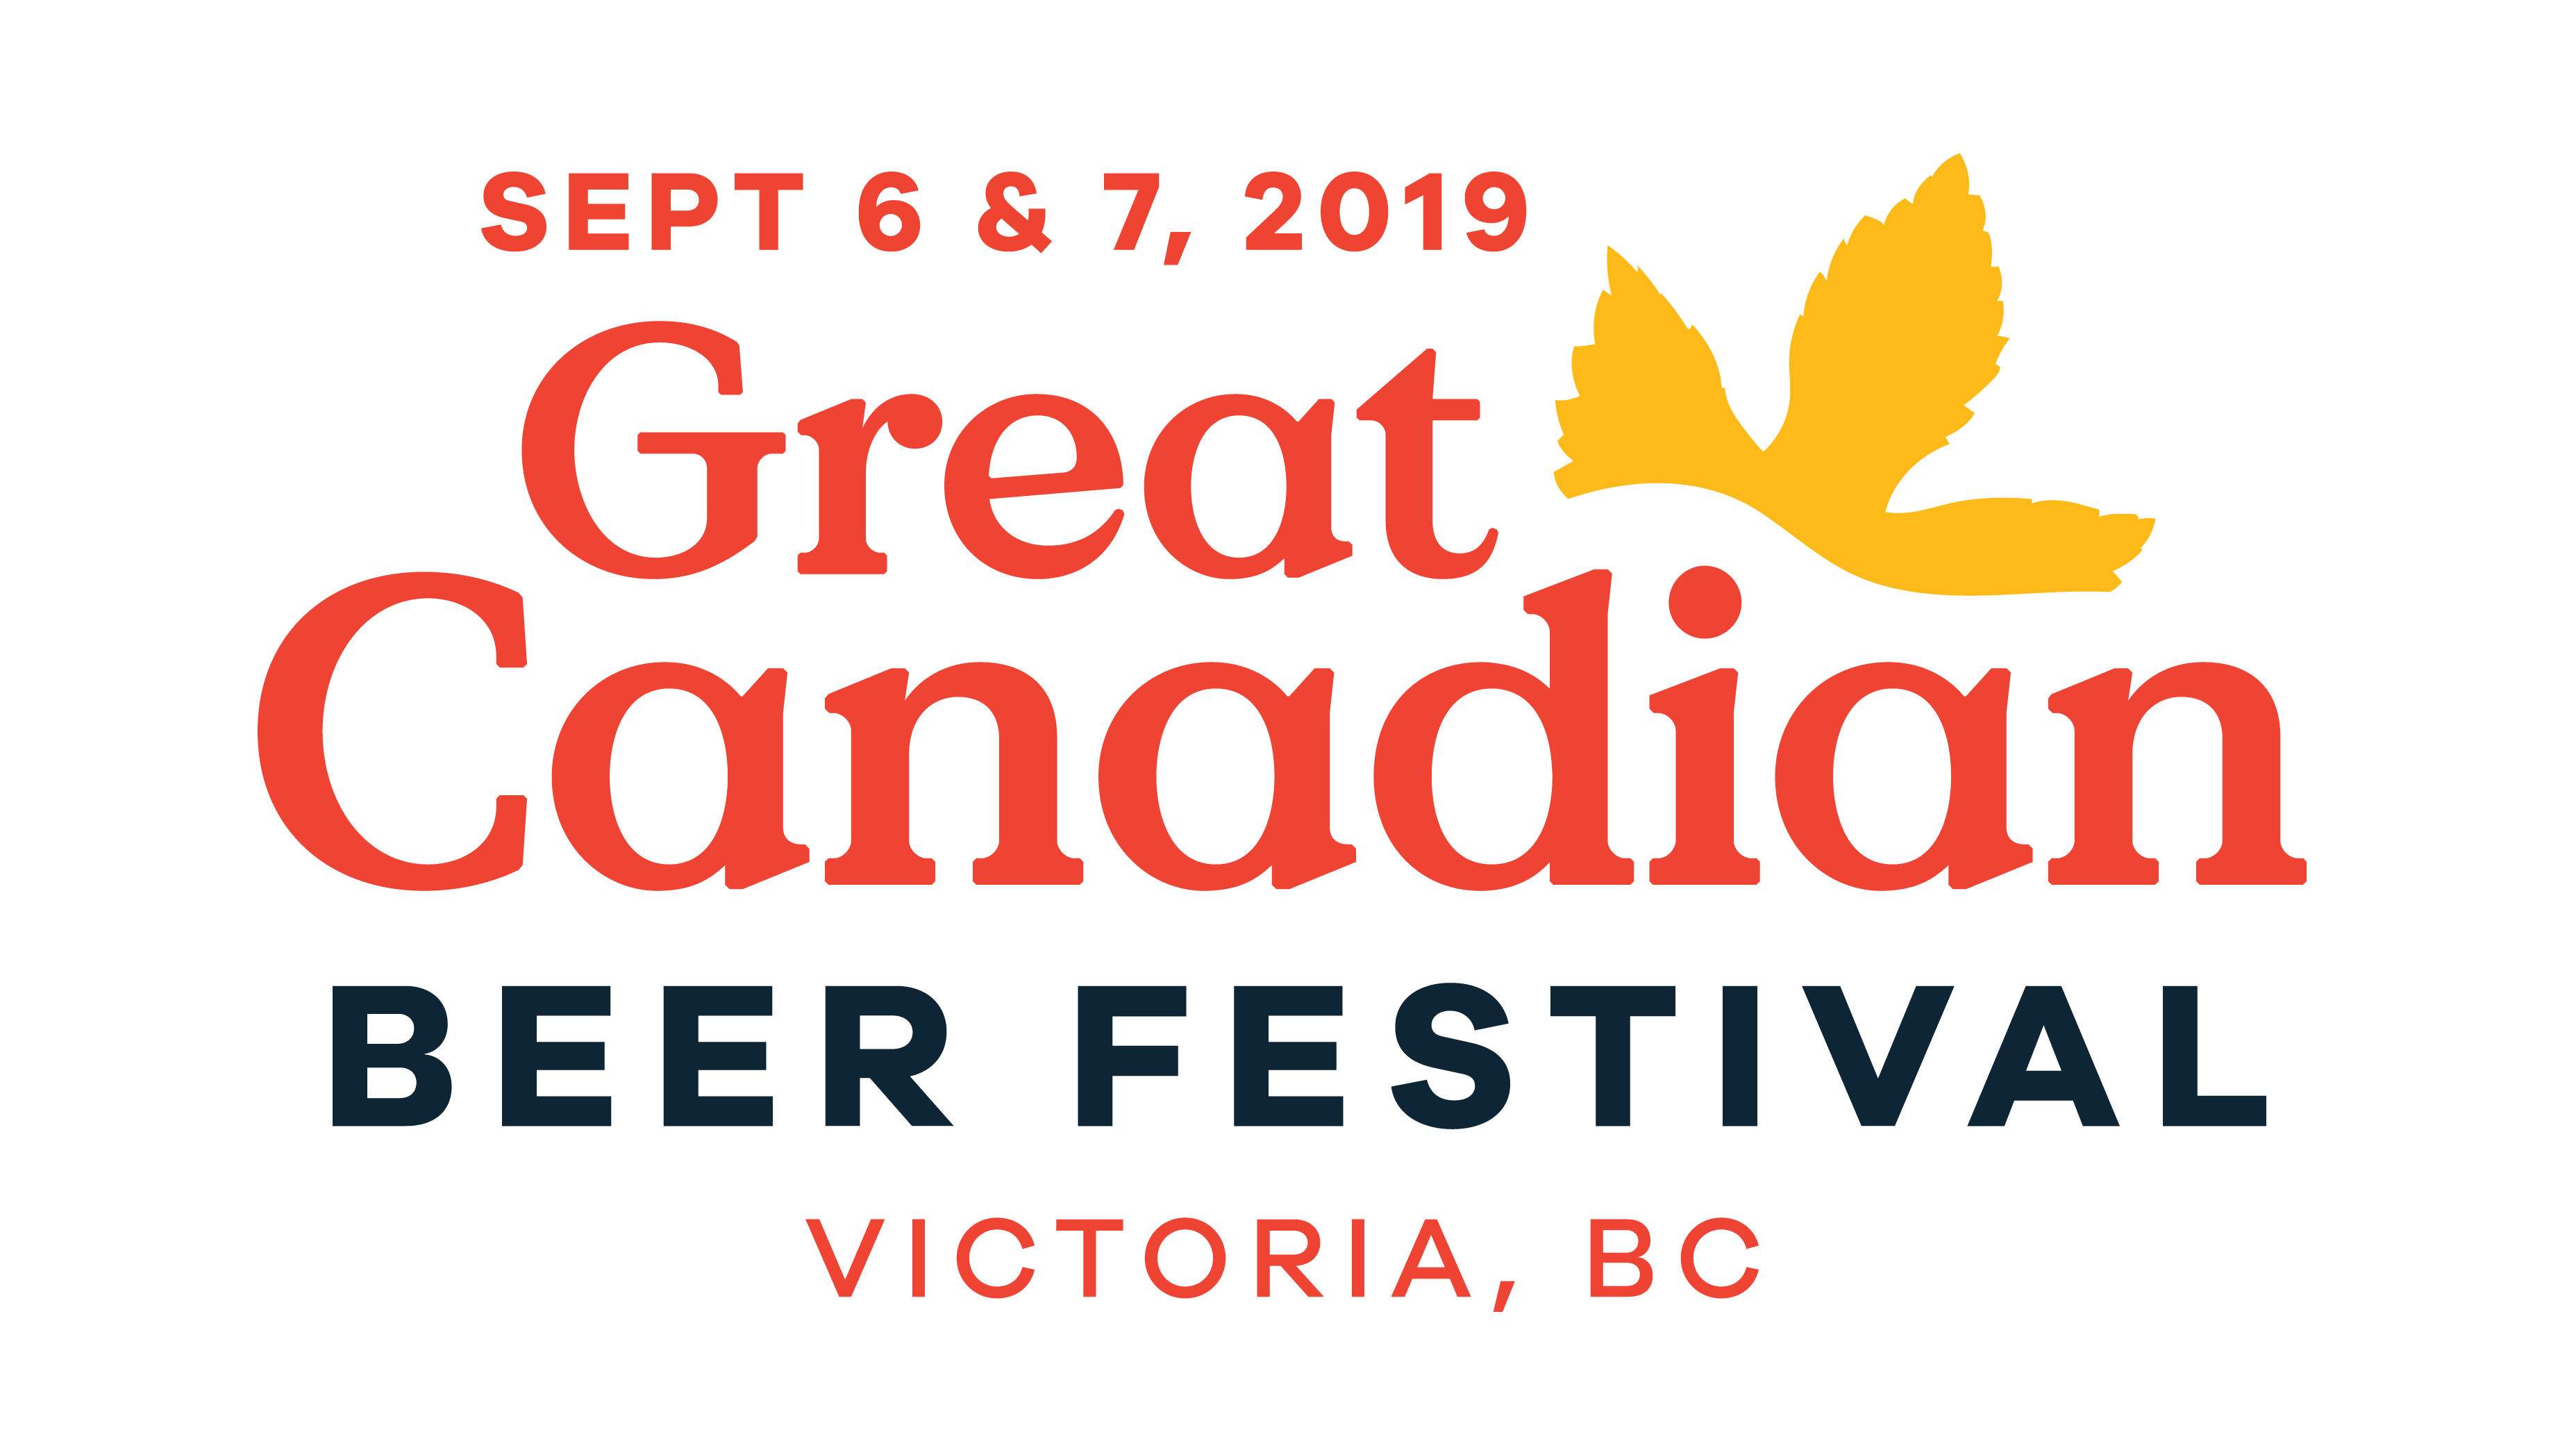 27th Annual Great Canadian Beer Festival Returns to Victoria